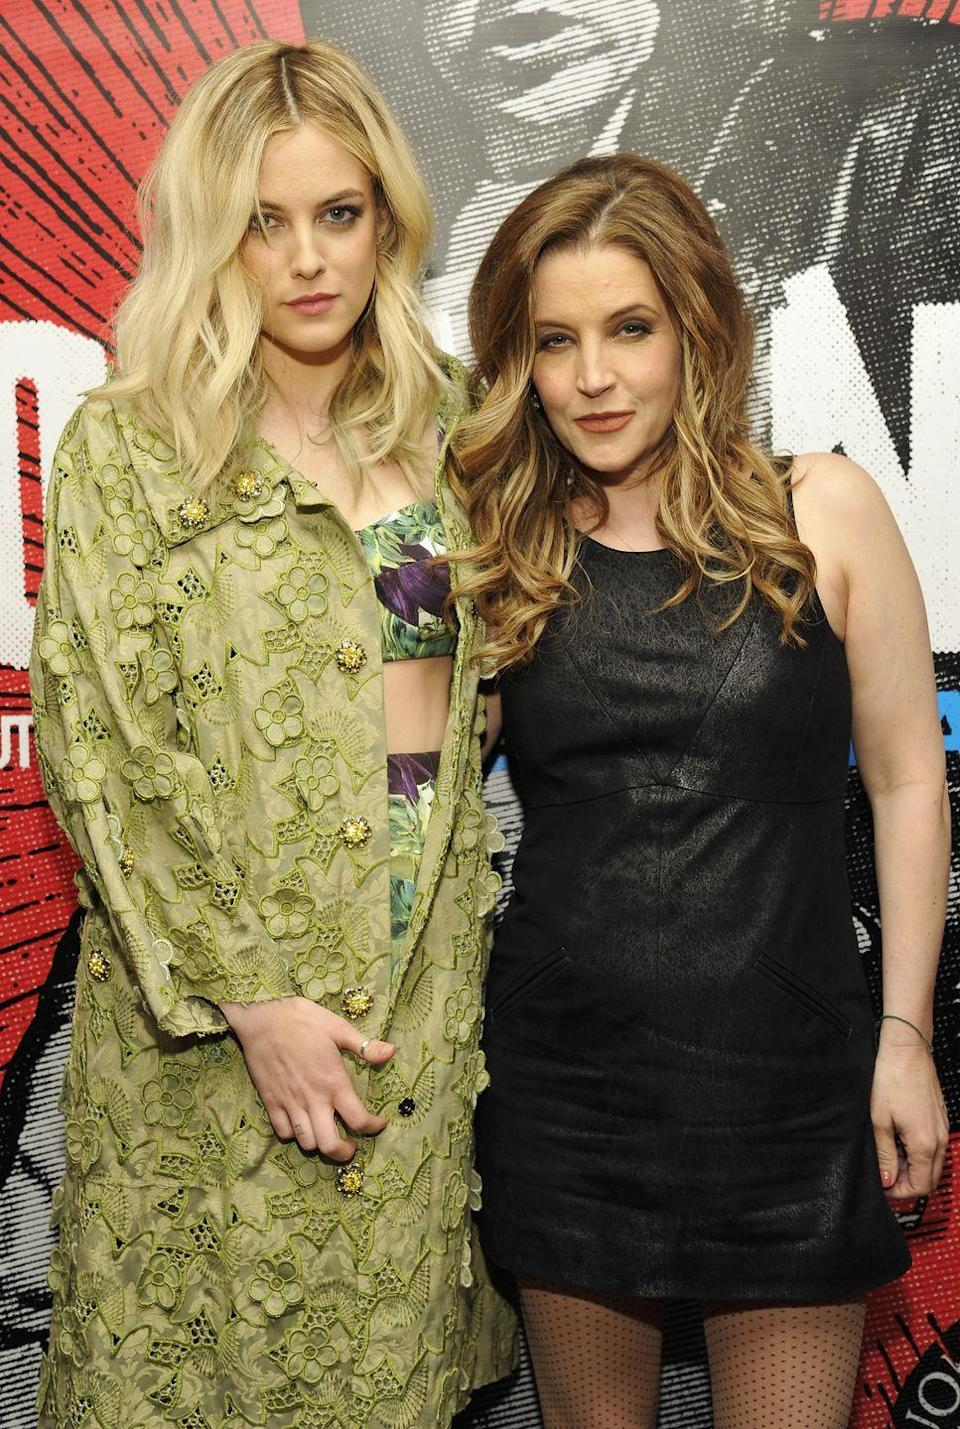 """<p><strong>Famous parent(s)</strong>: singer Lisa Marie Presley <br><strong>What it was like</strong>: """"People always ask, 'How crazy is it that your grandpa was Elvis and your stepdad was Michael Jackson?' I make them happy and say, 'Yeah, it's soooo crazy!'"""" she's <a href=""""http://us.hellomagazine.com/celebrities/12016021911850/riley-keough-on-being-related-to-Elvis-Presley-Michael-Jackson/"""" rel=""""nofollow noopener"""" target=""""_blank"""" data-ylk=""""slk:said"""" class=""""link rapid-noclick-resp"""">said</a>. """"The reality is I know as much about my grandpa as you'd know about a grandpa you never met. I remember this Disney watch that Michael gave me. I think I sold that for five (dollars).""""</p>"""